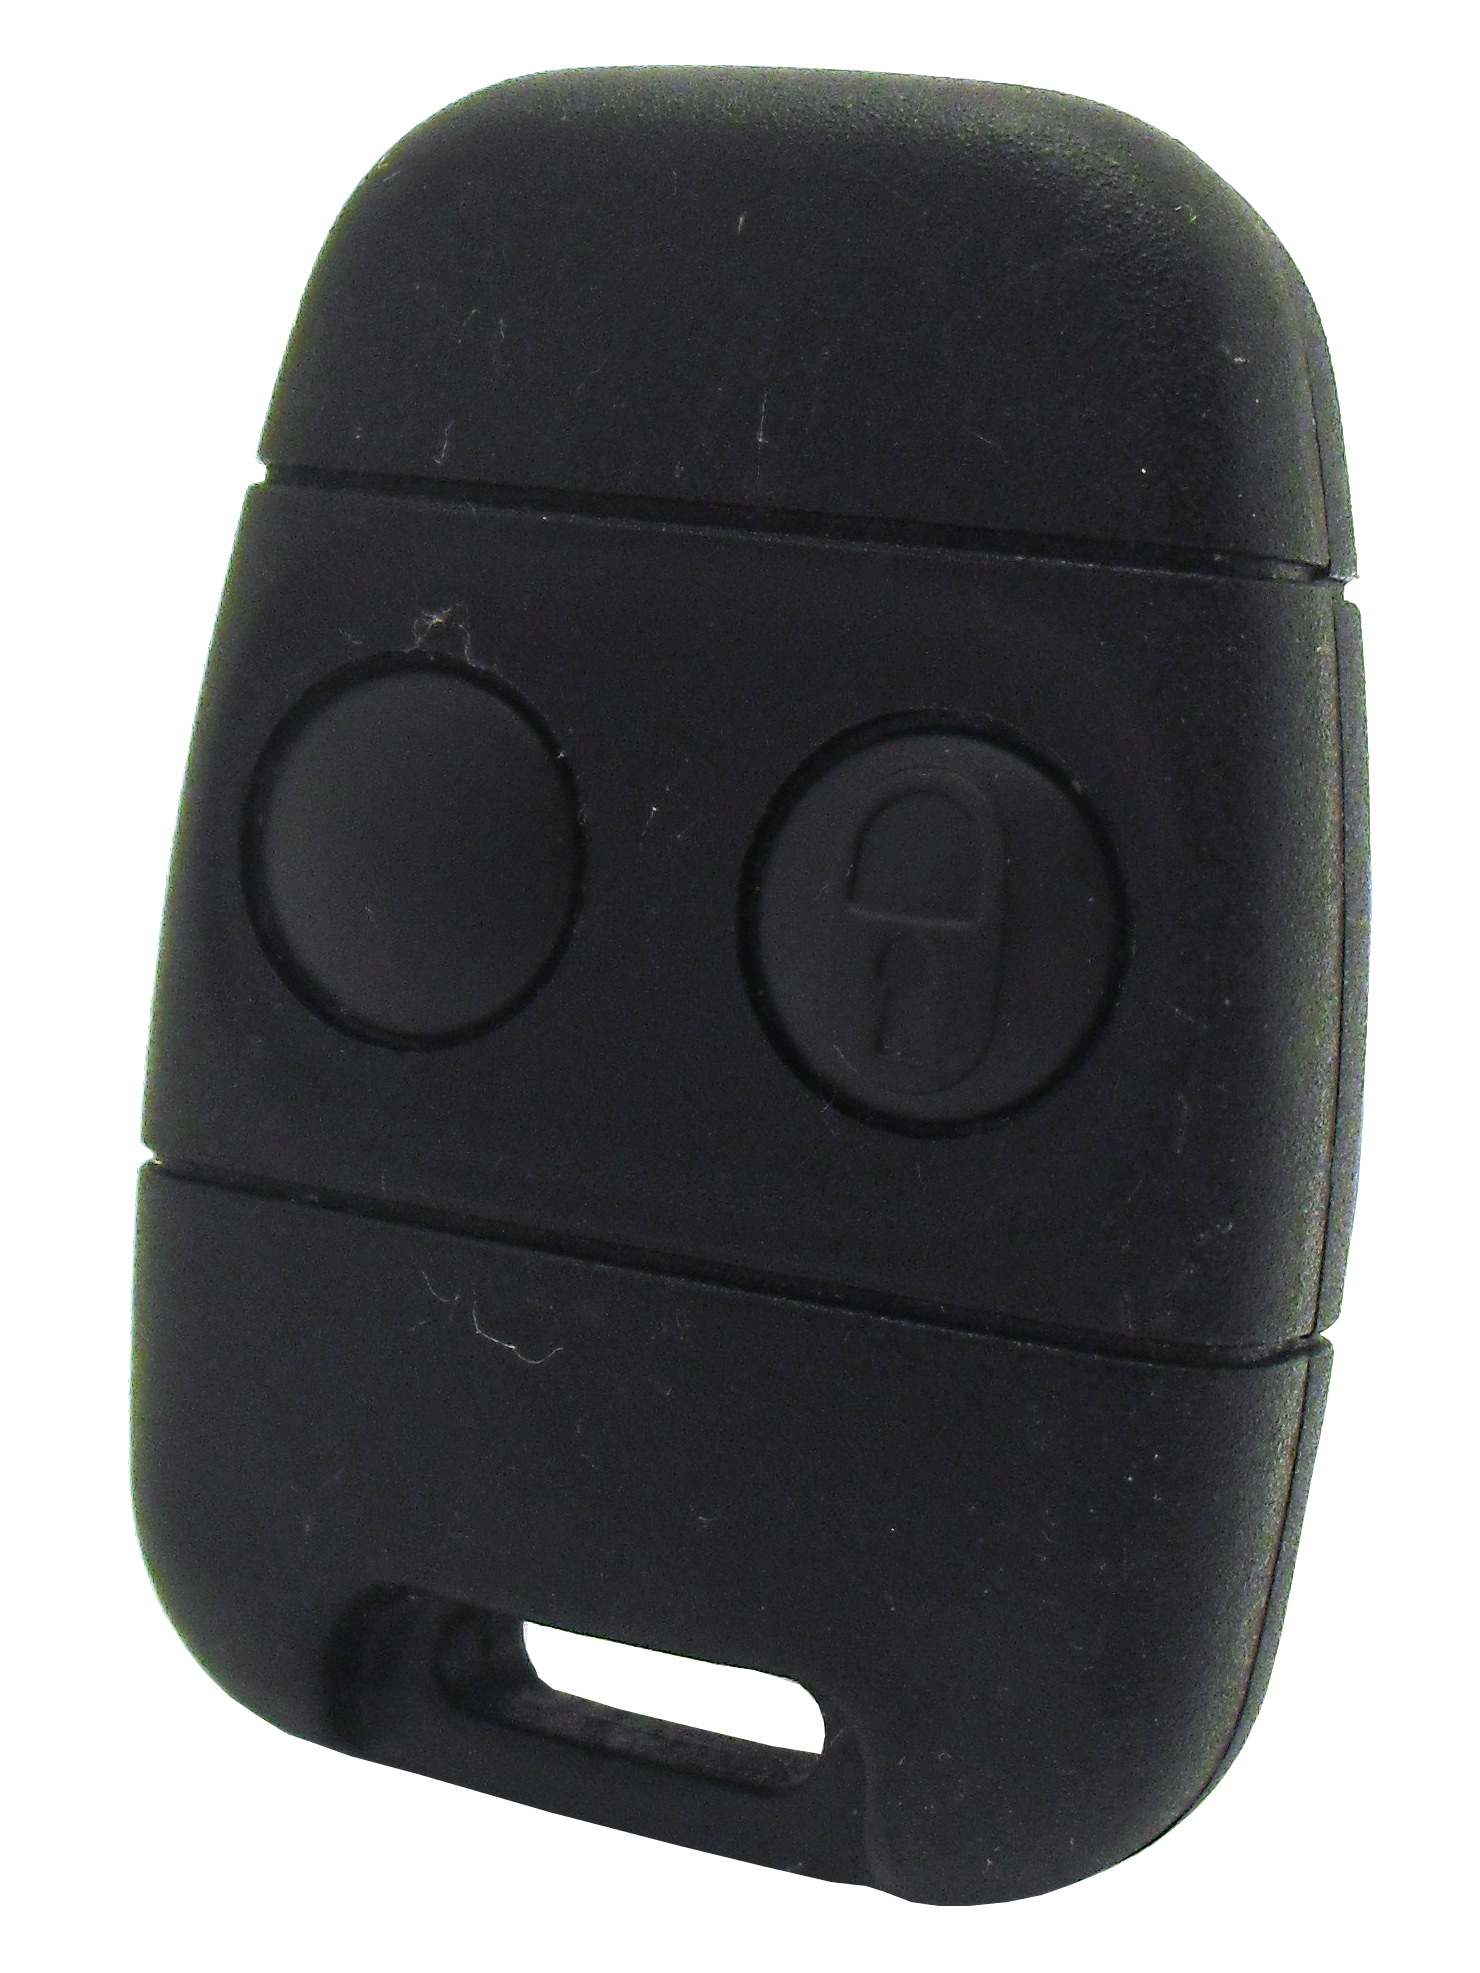 Land Rover Keyless Entry Remote - 2 button